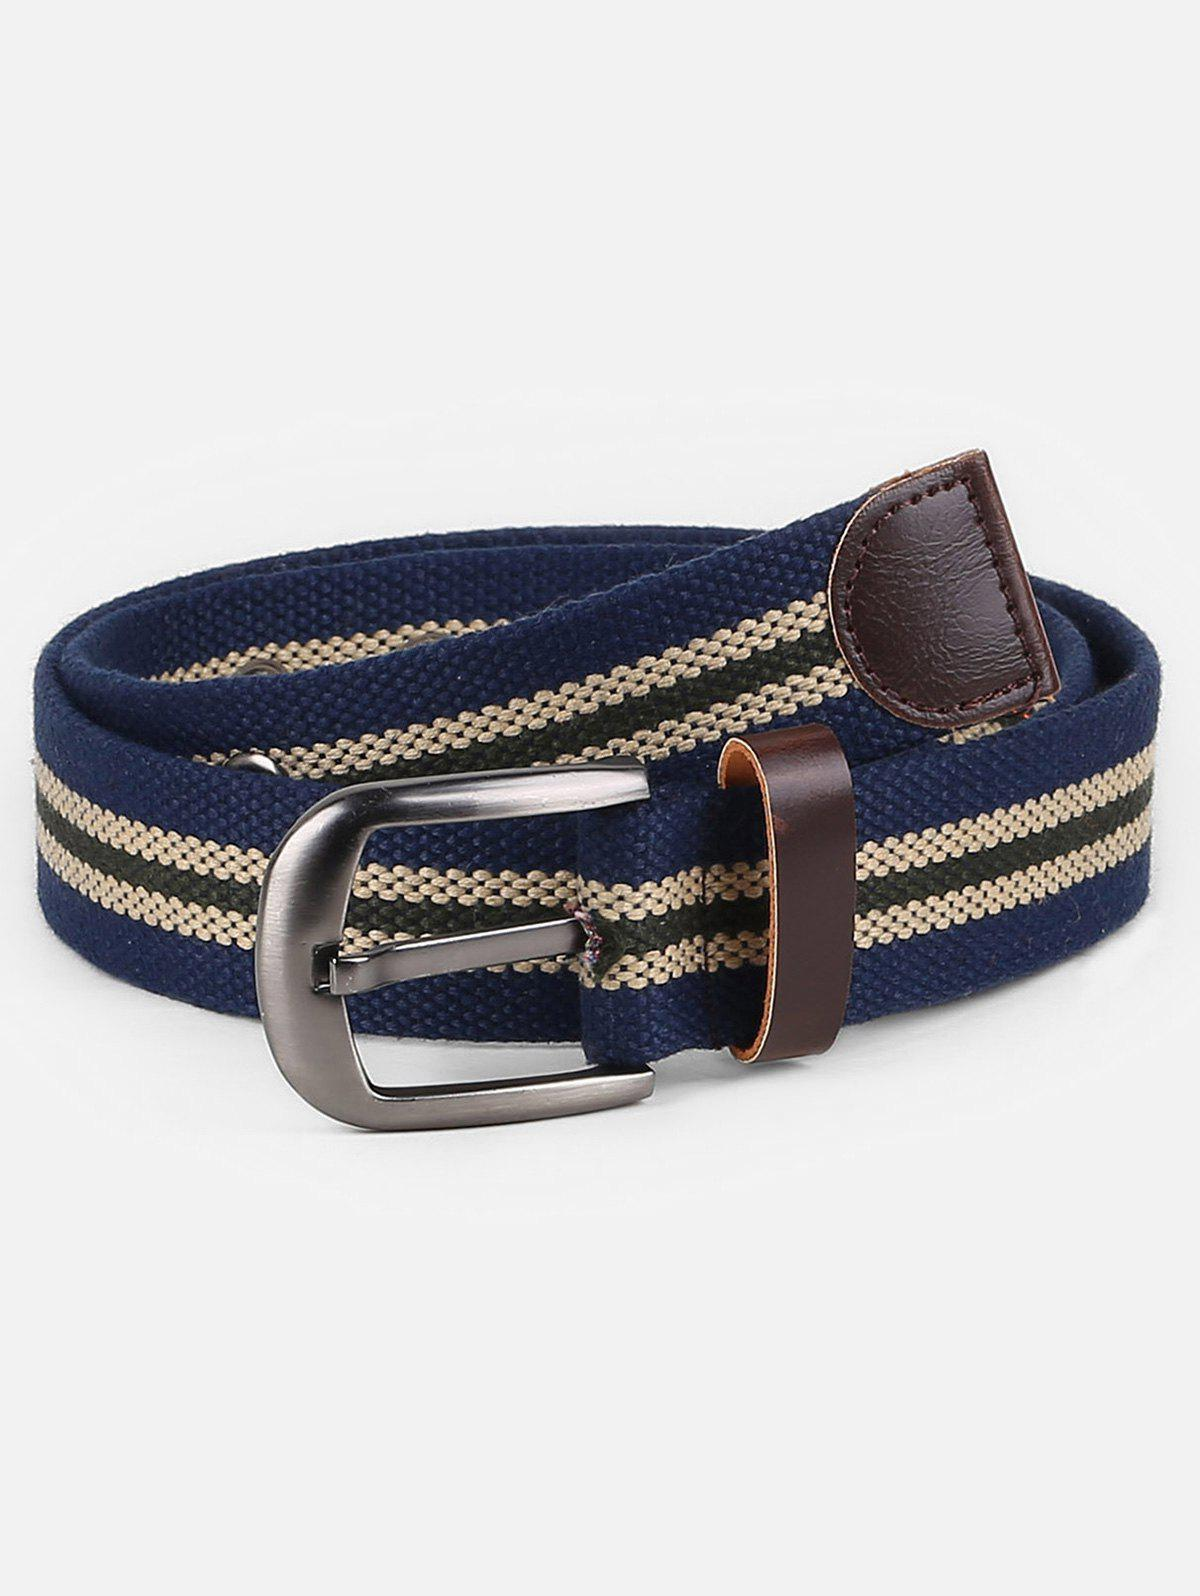 New Outdoor Canvas Striped Pattern Belt